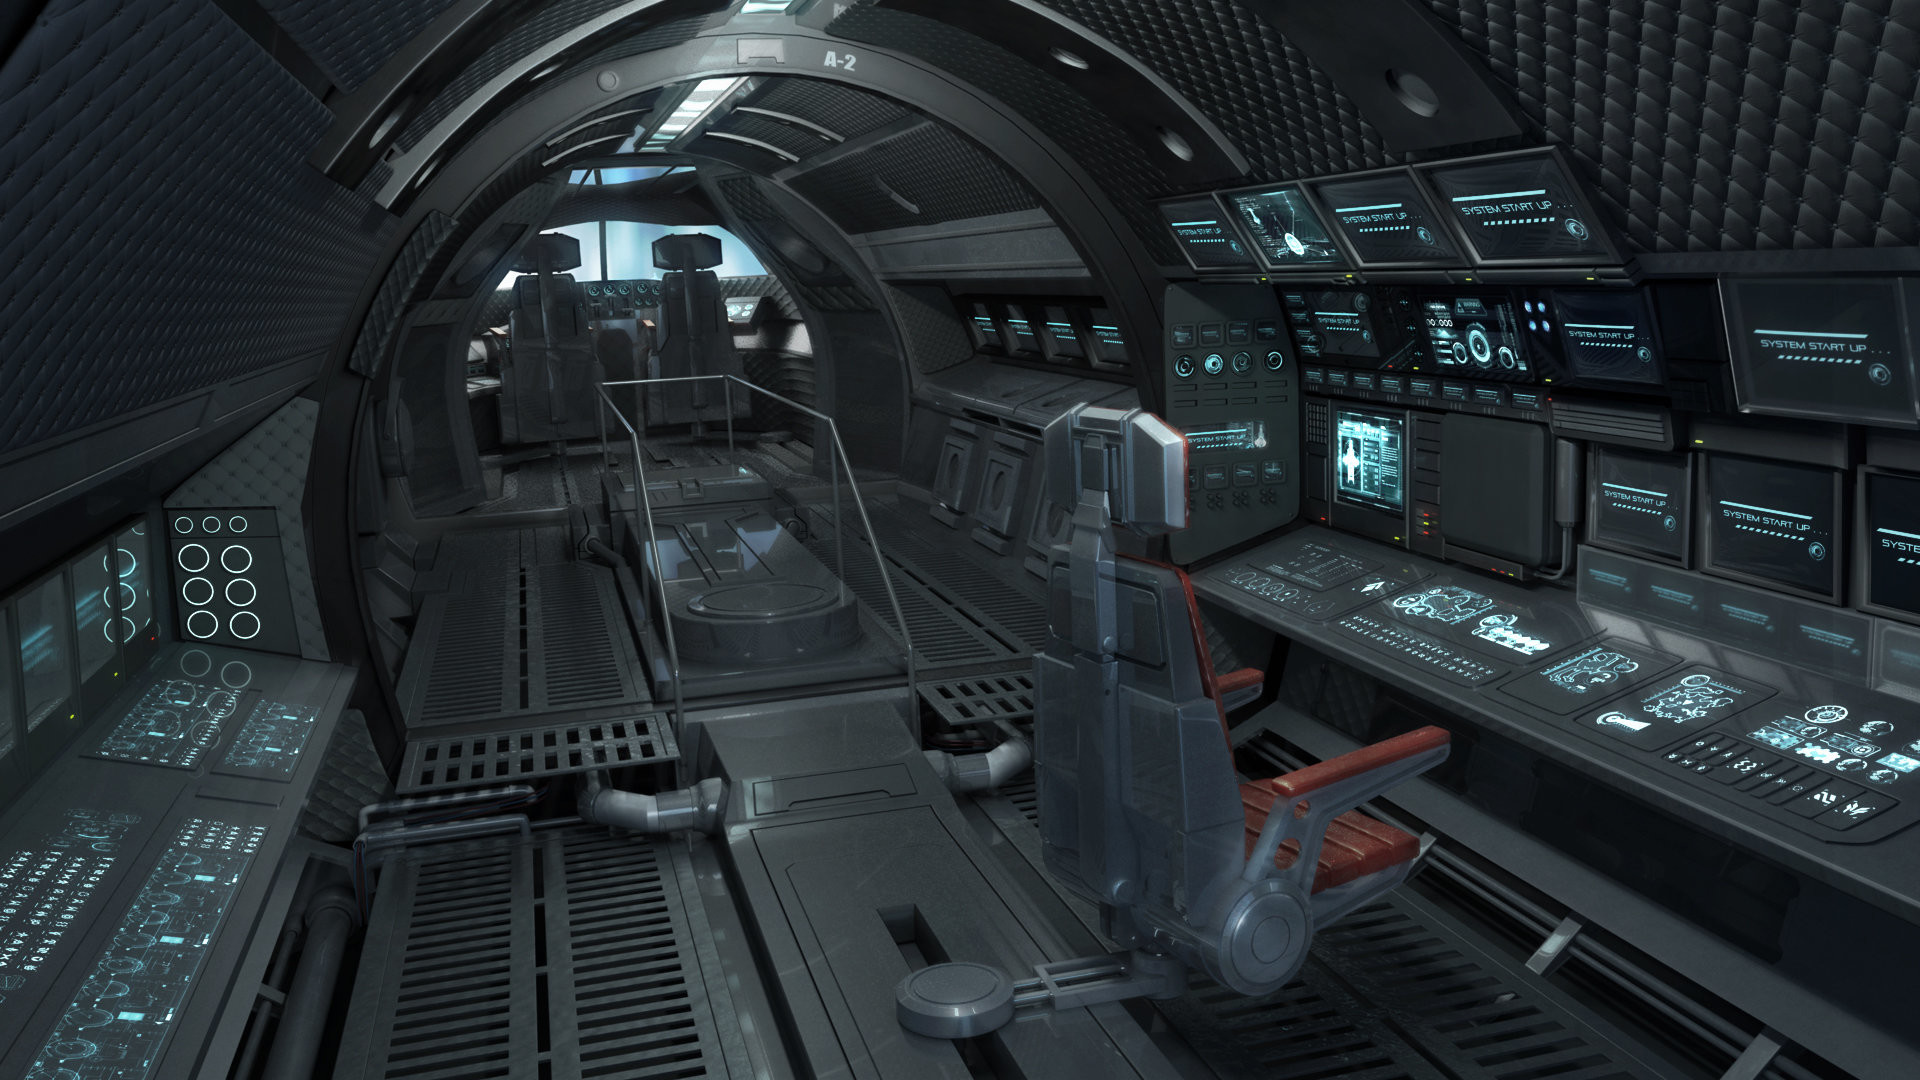 Sci Fi Control Panel Wallpaper : Spaceship control panel wallpaper images